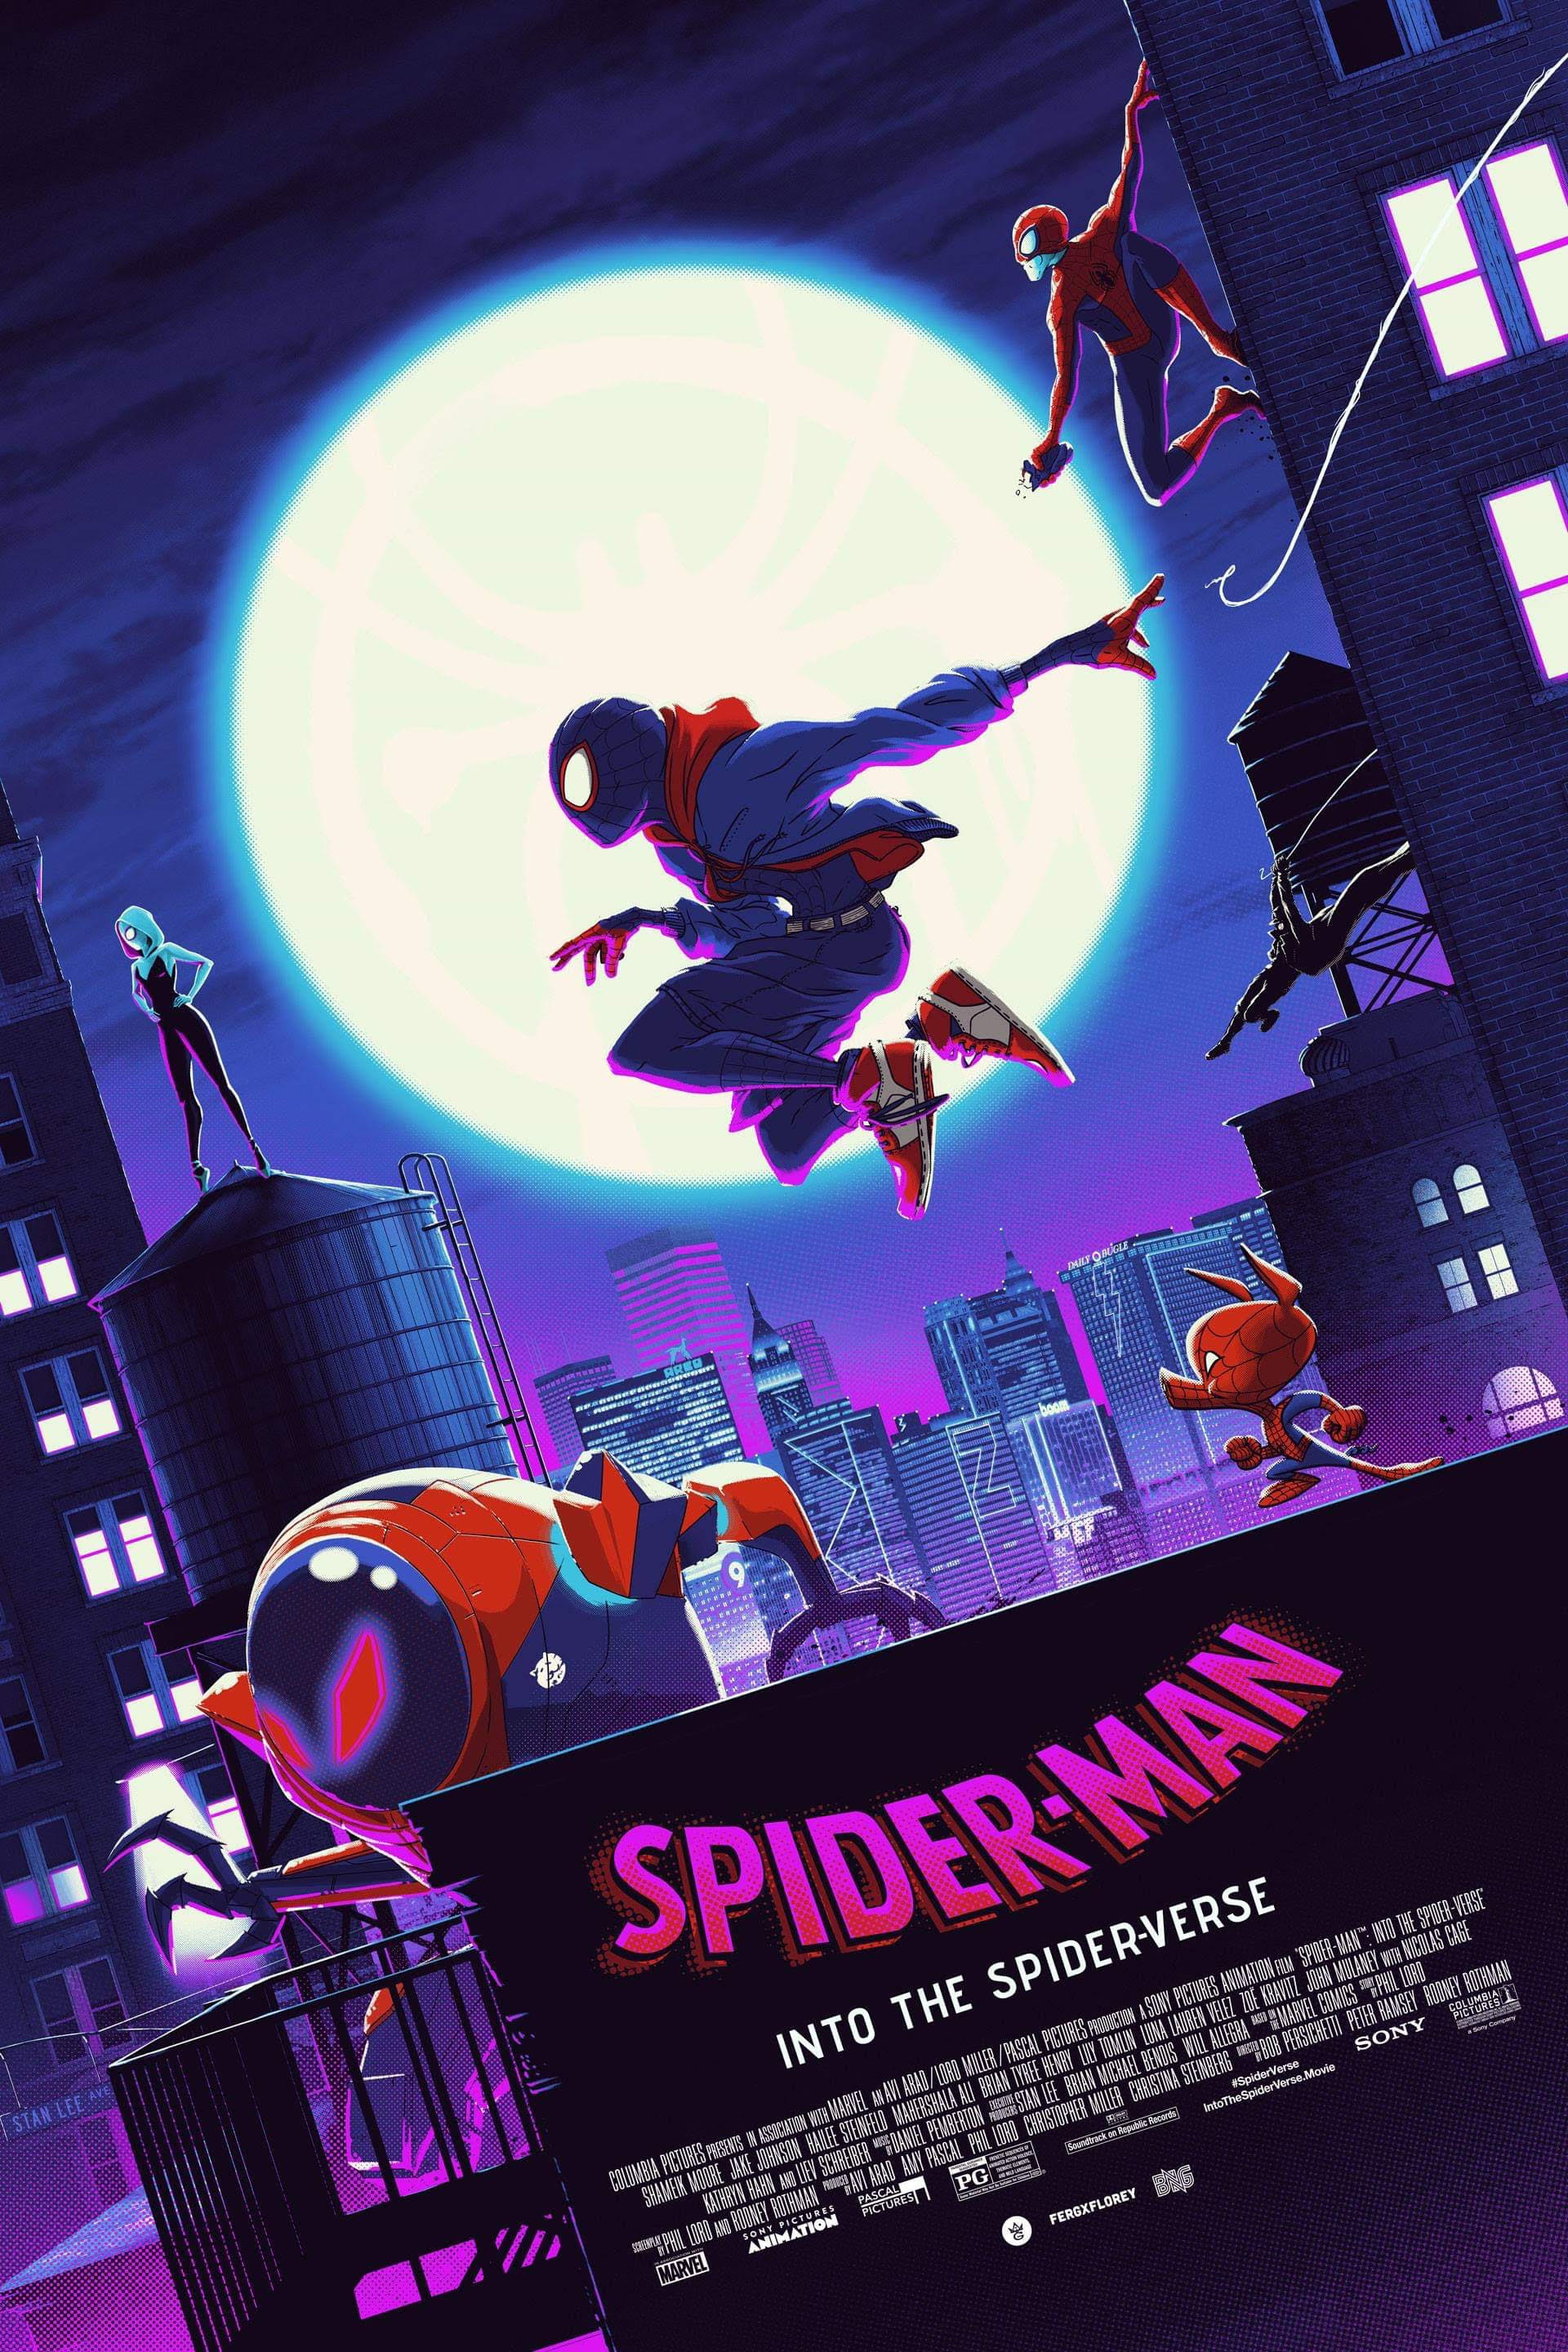 this-cool-spider-man-into-the-spider-verse-poster-art-from-matt-ferguson-glows-in-the-dark1